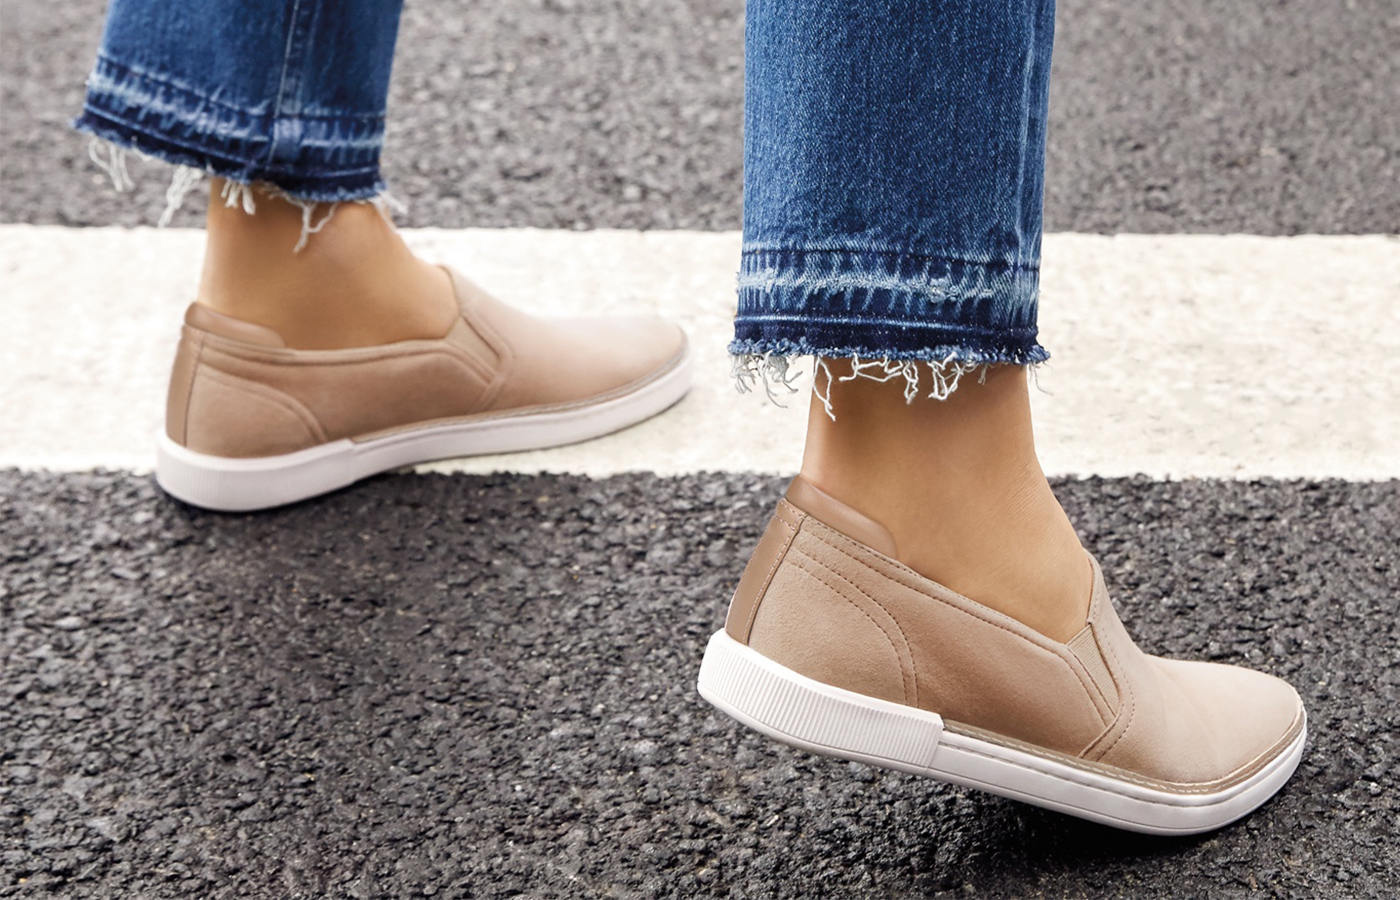 This comfy shoe brand is offering 30